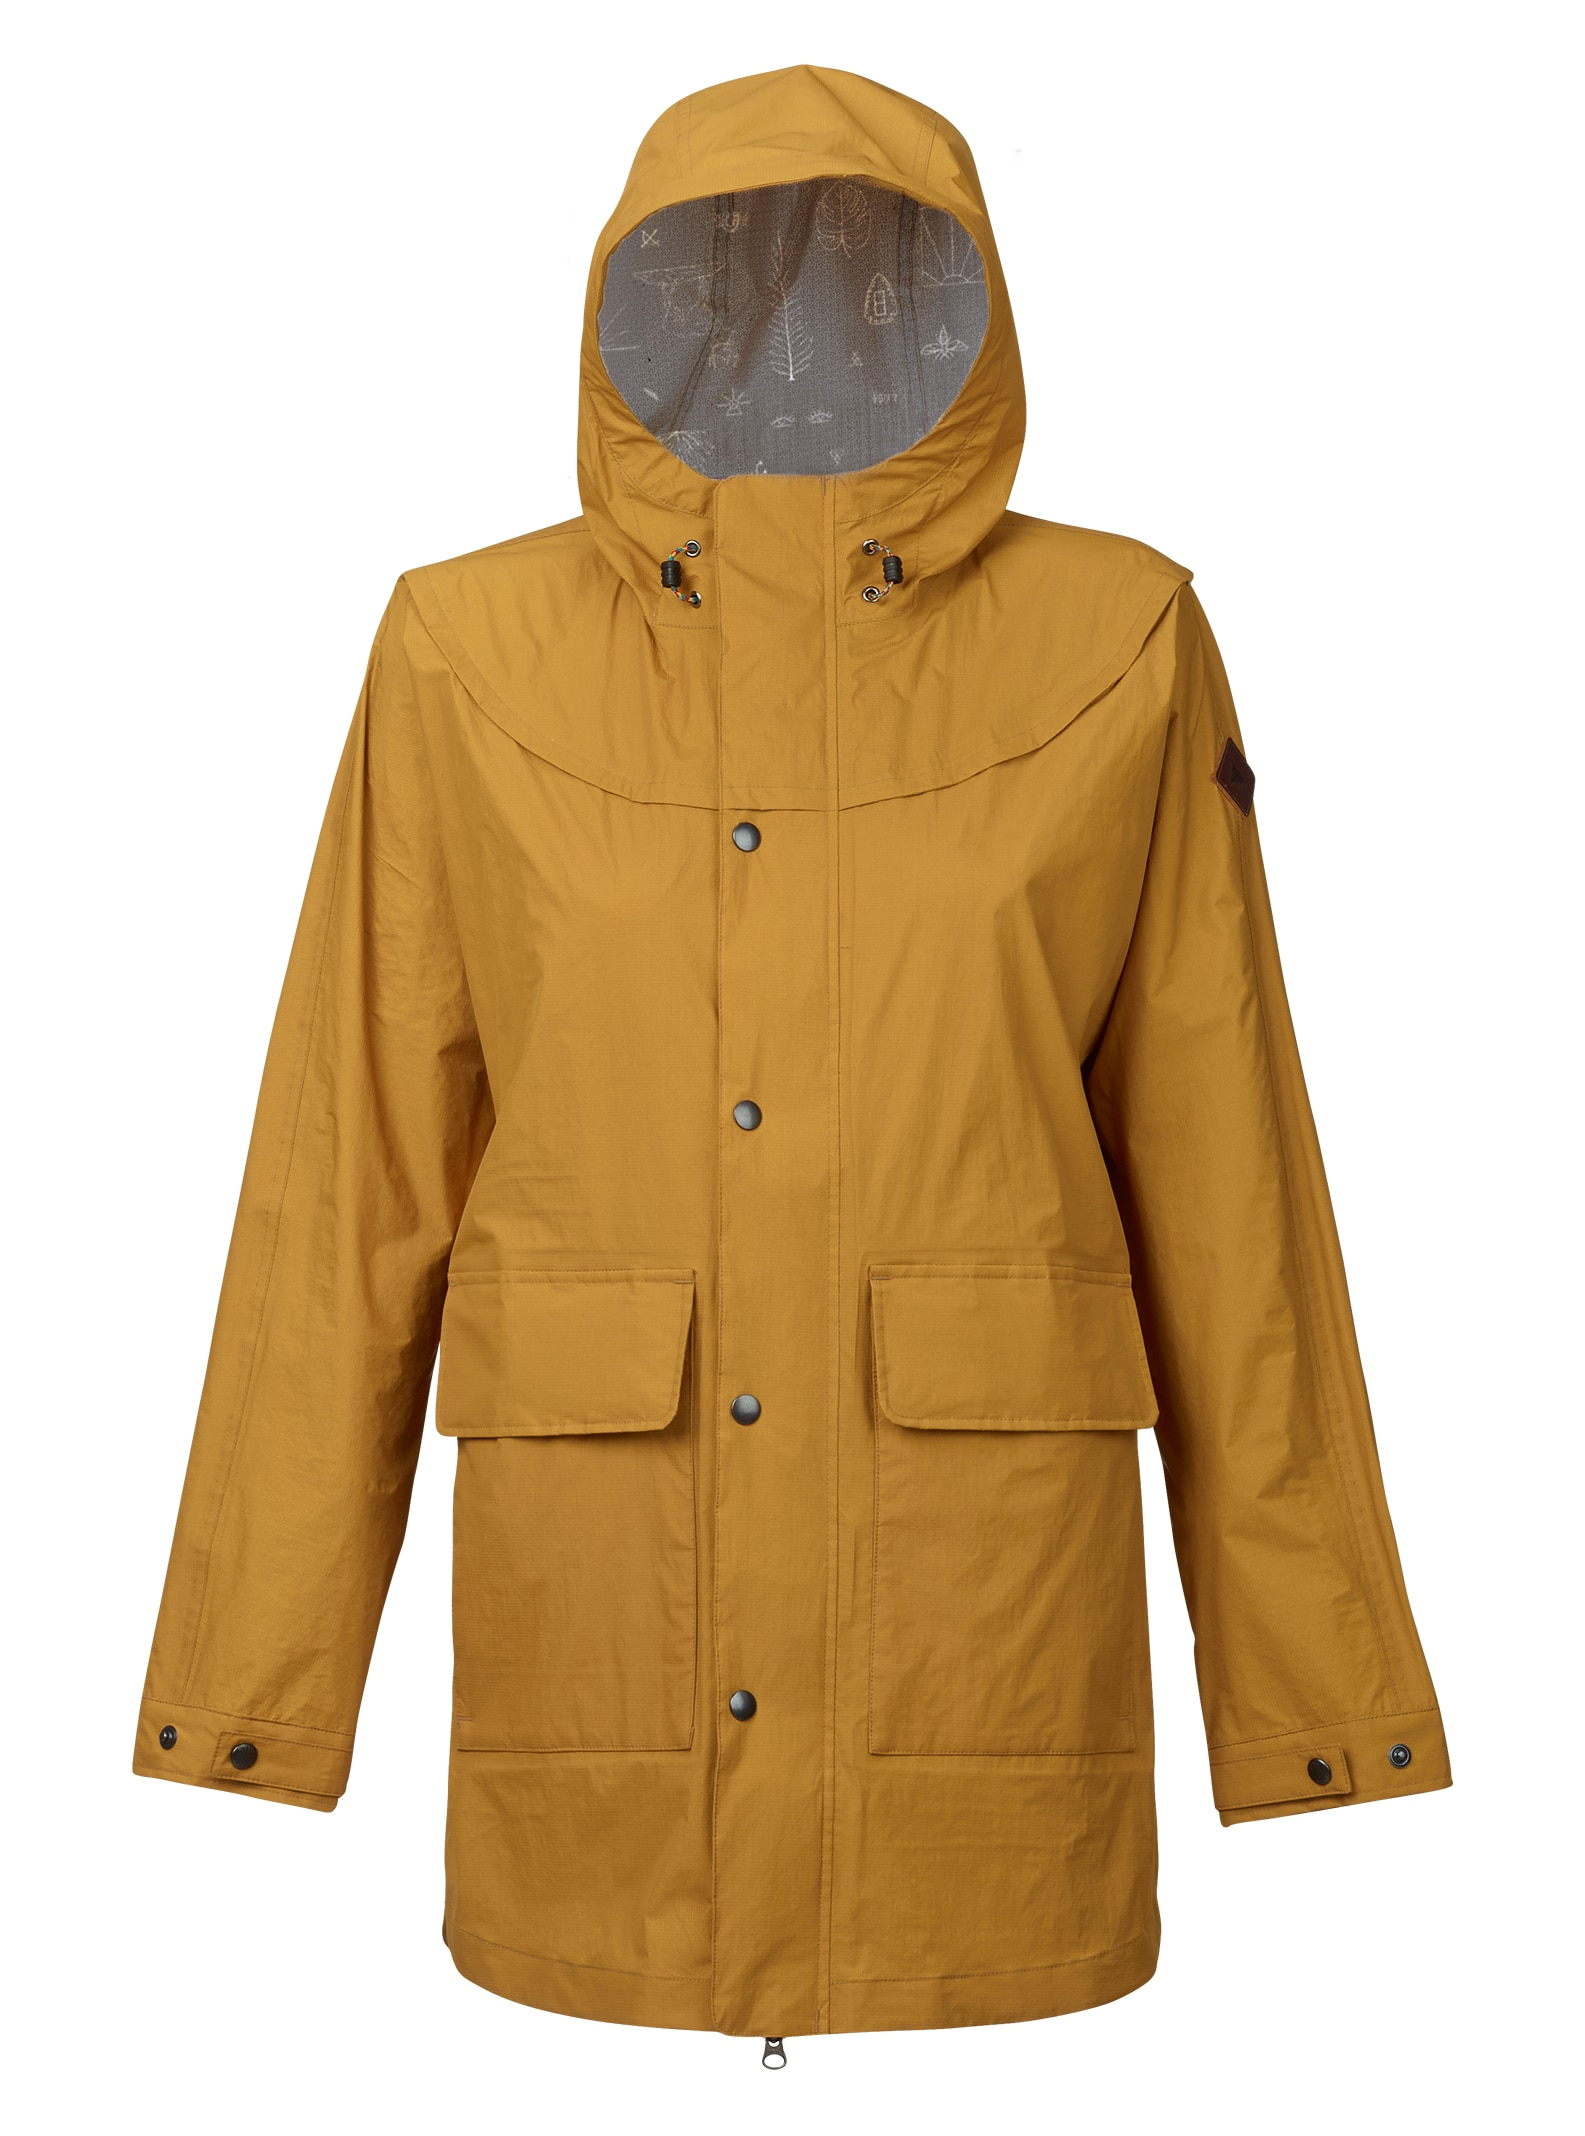 Burton - Parka imperméable Flare affichage en Golden Yellow